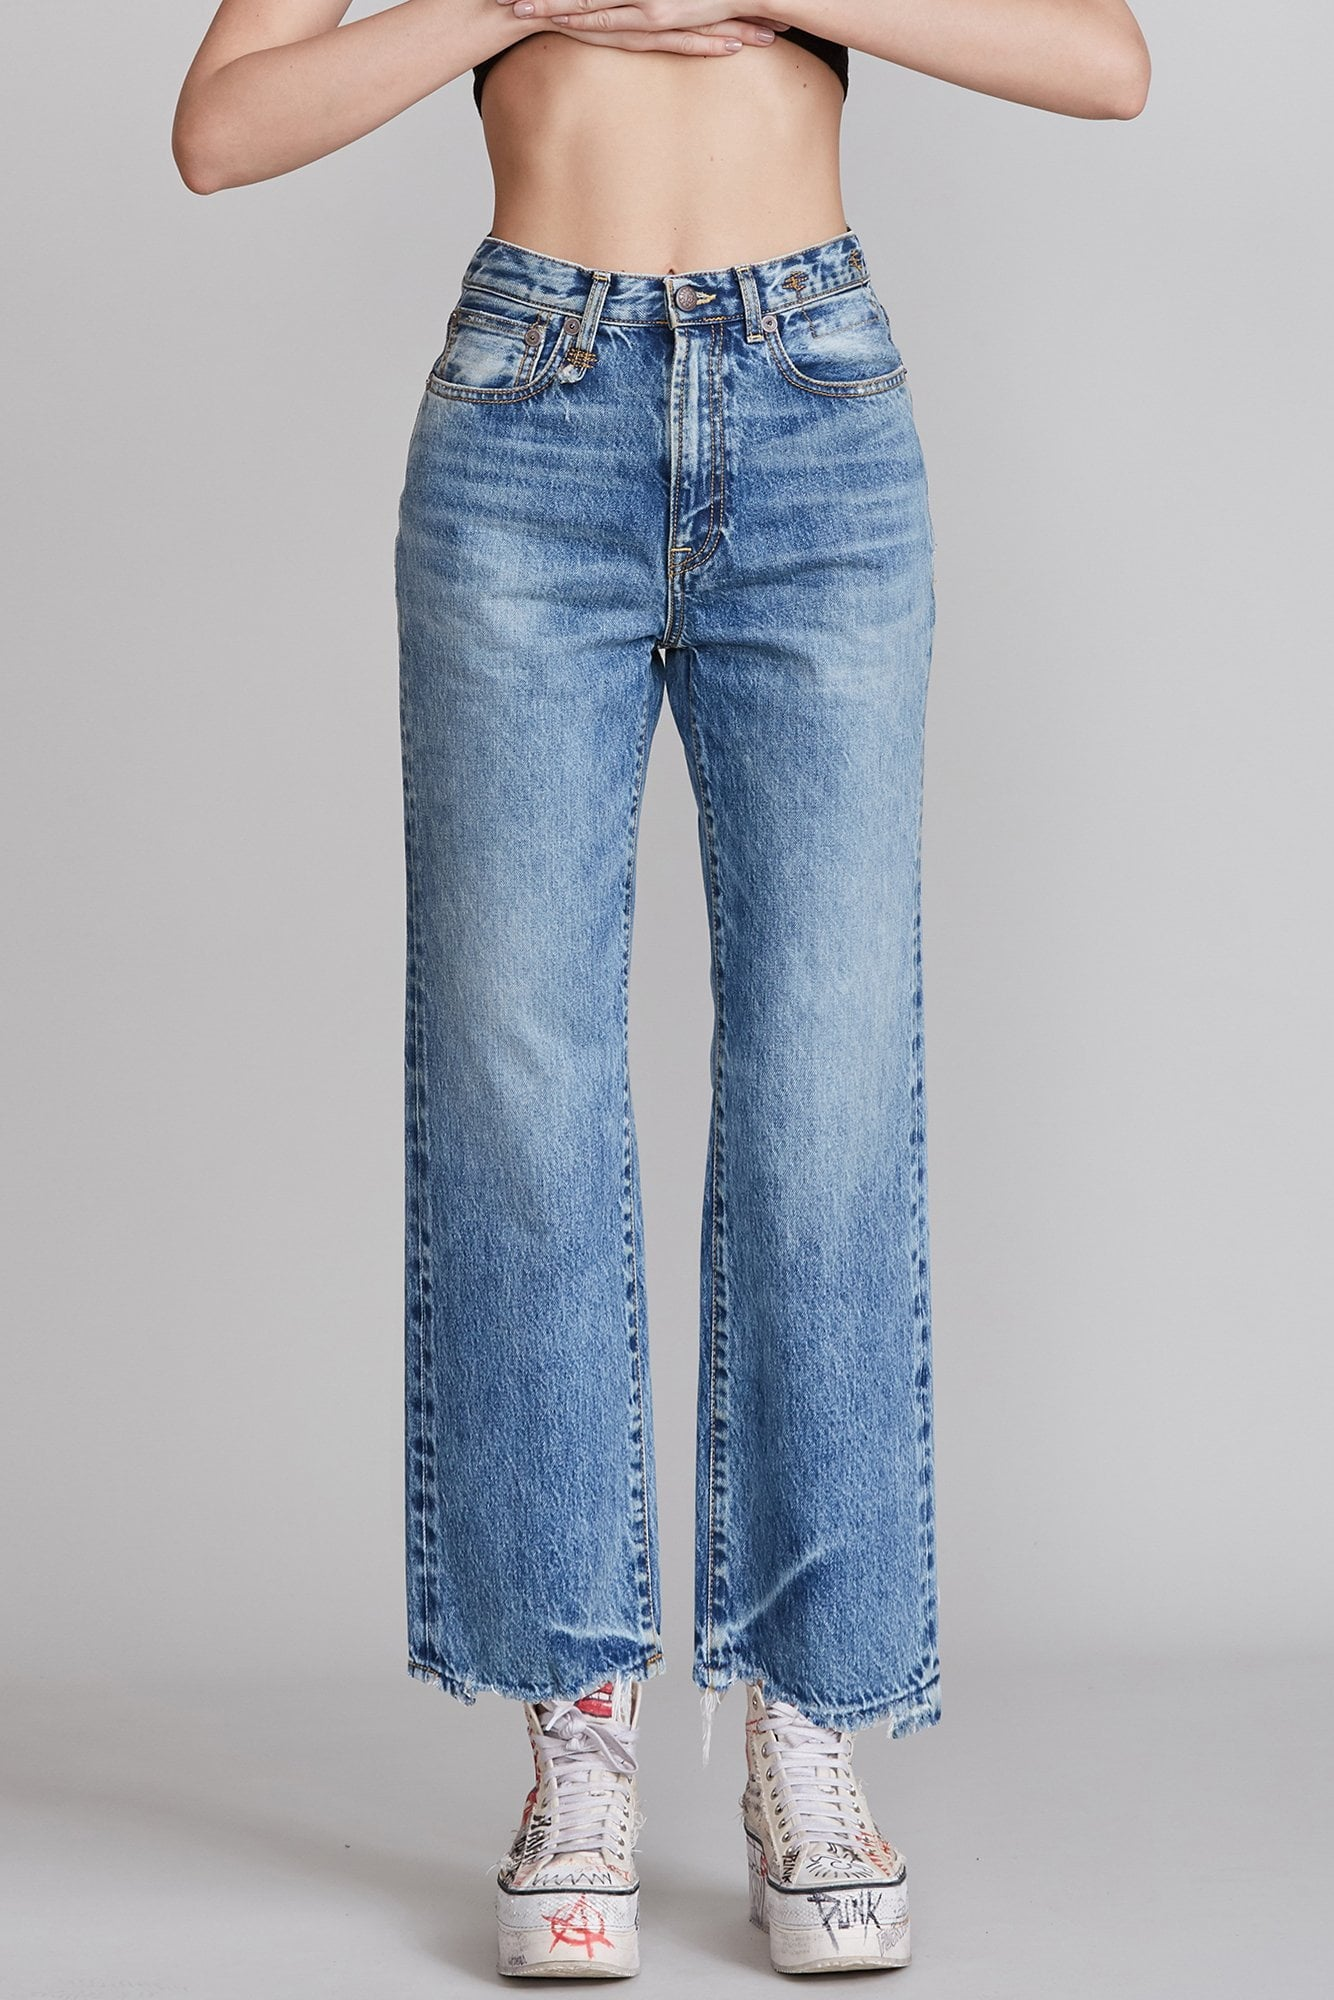 Royer Cropped Jean - Benji Blue